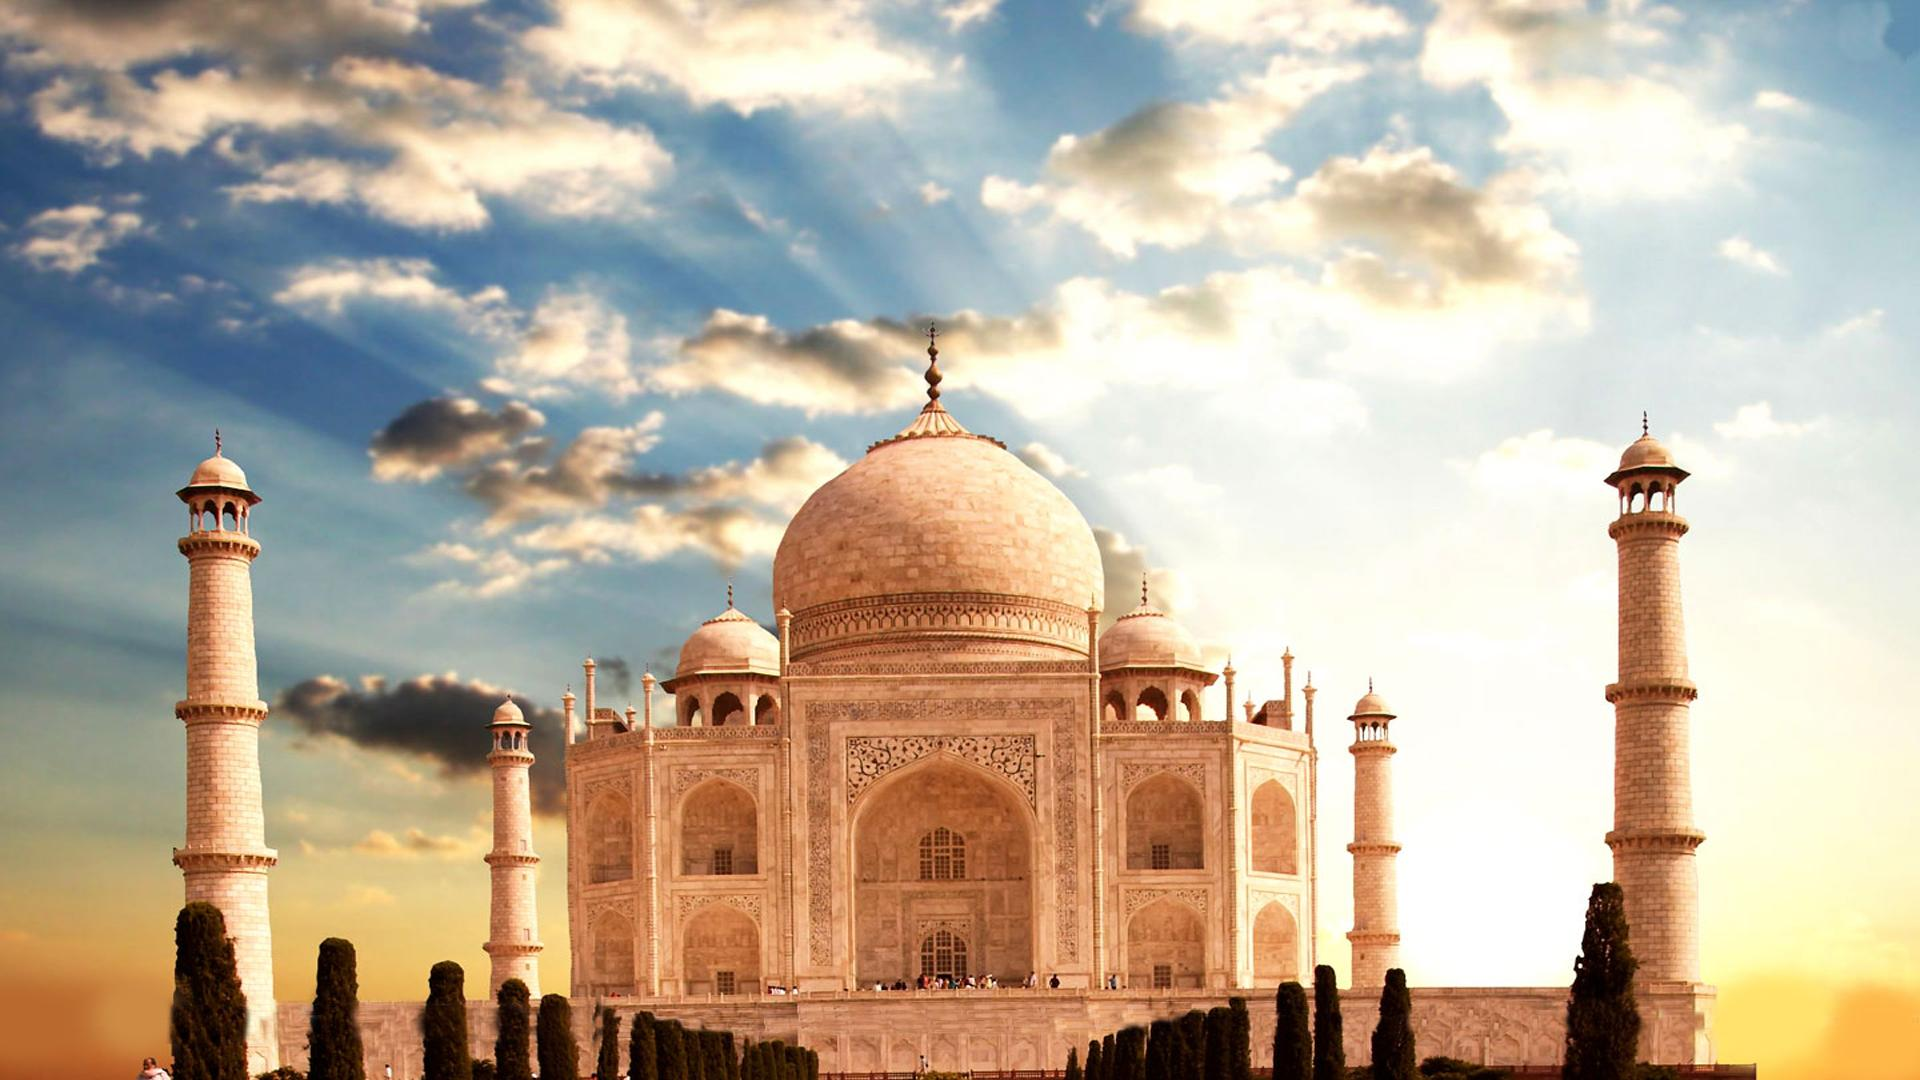 taj mahal wonder of the world in india photo